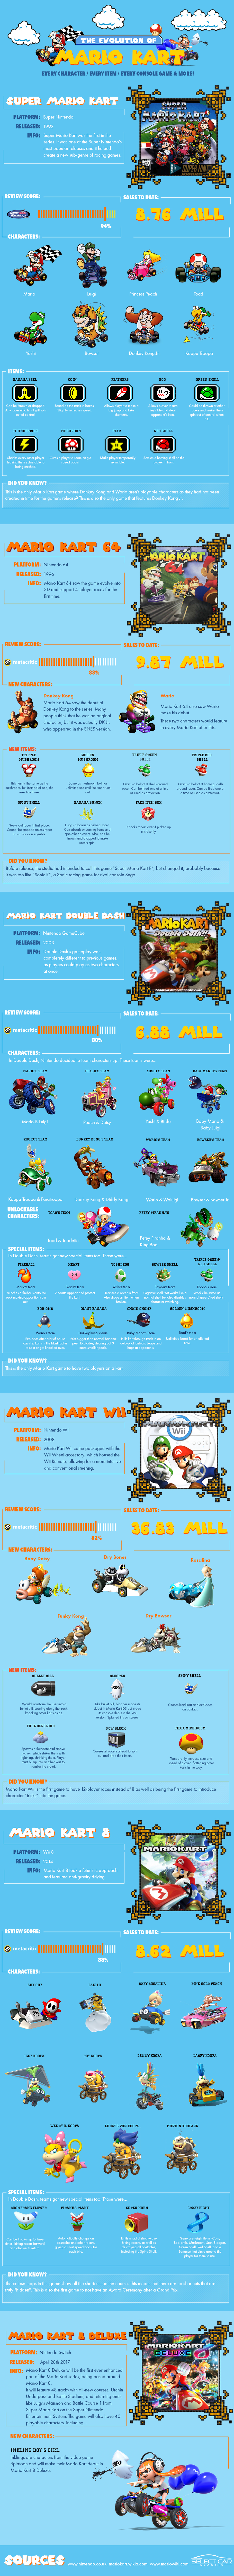 Infographic: The Evolution Of Mario Kart